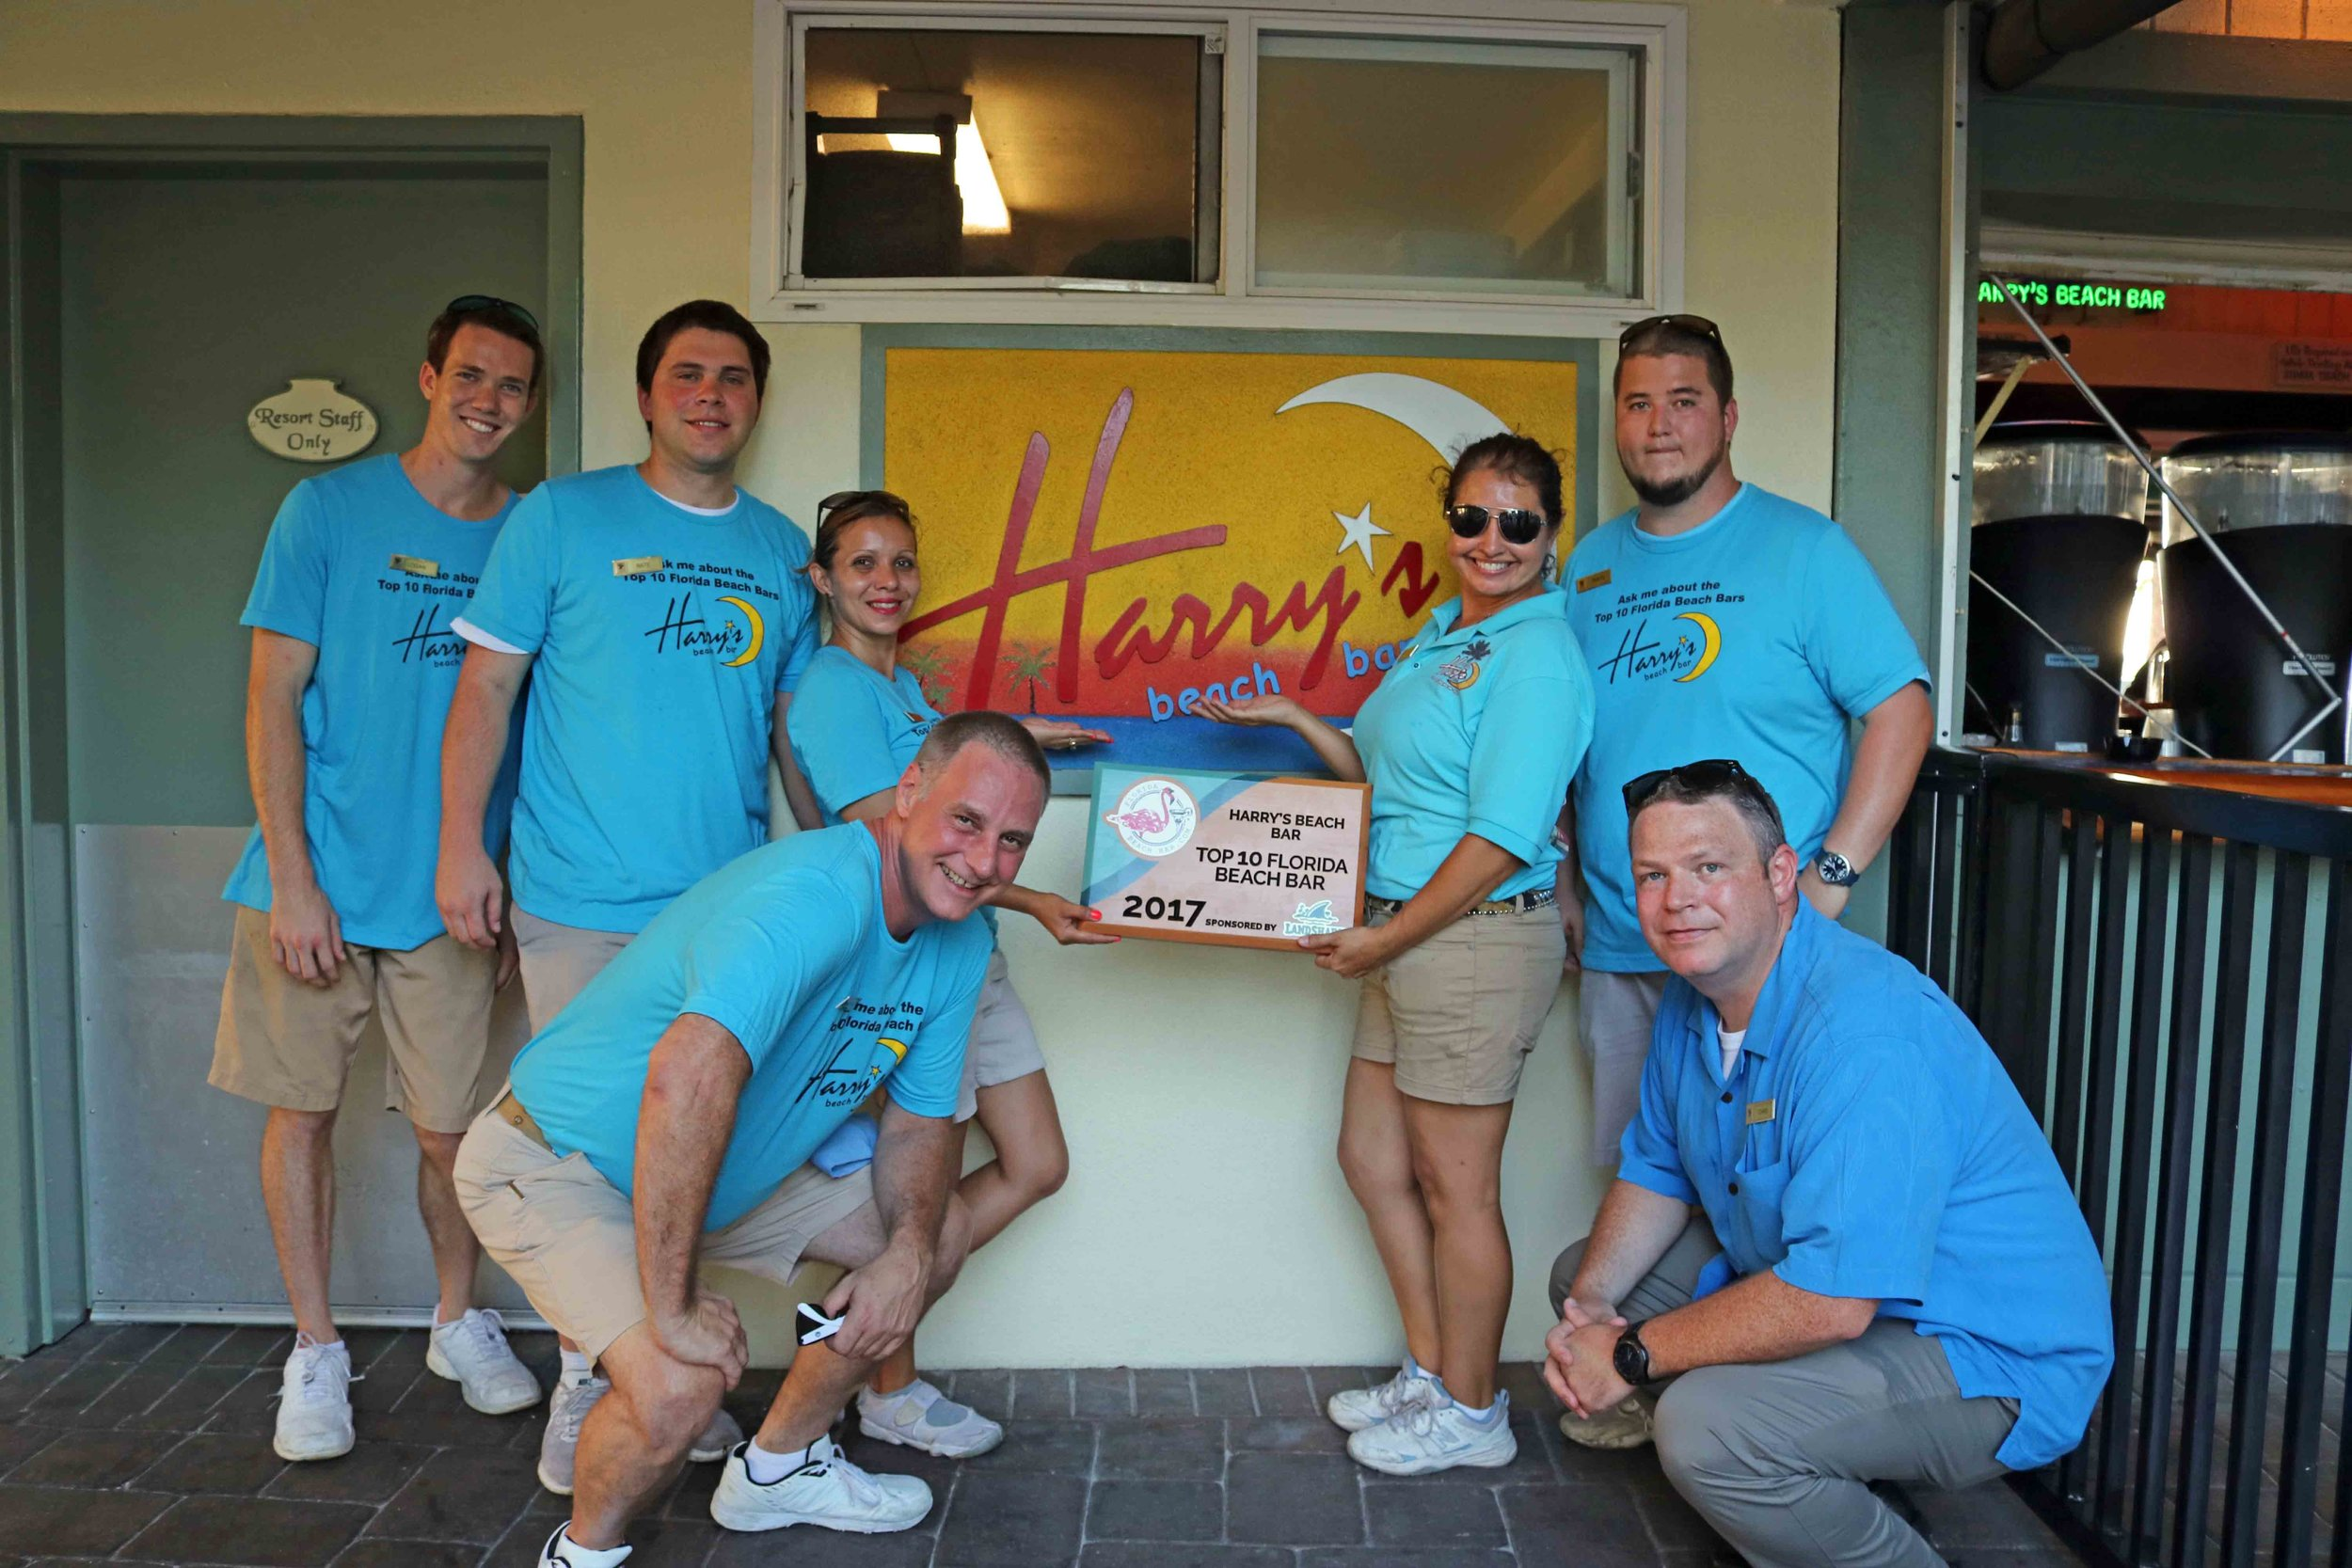 Some of the amazing staff at Harry's Beach Bar